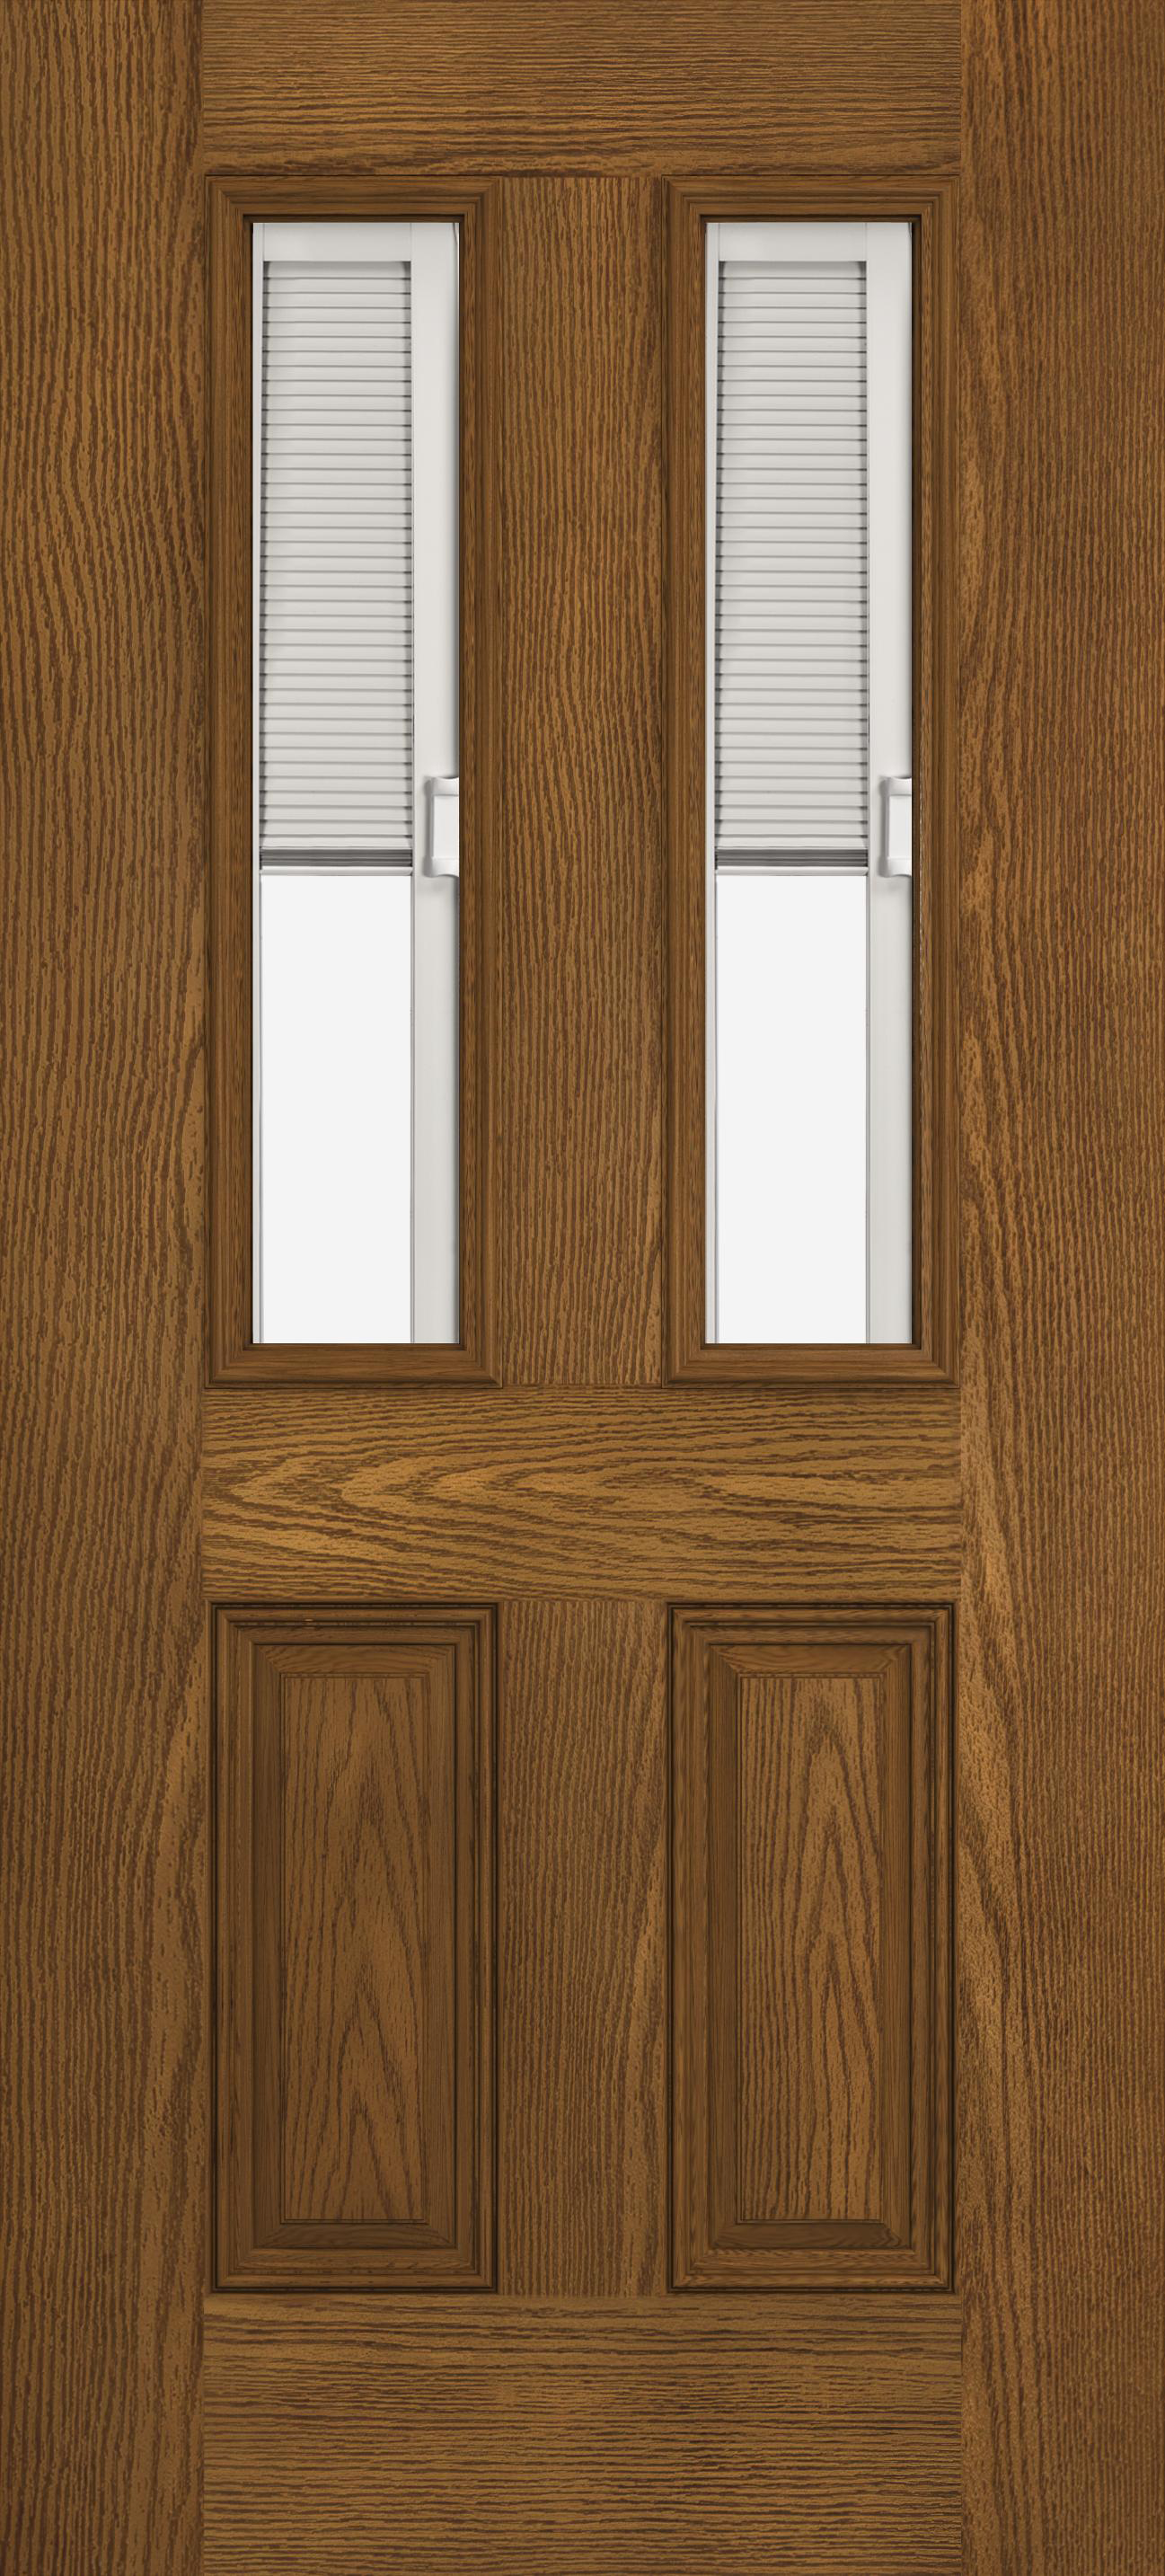 Reliable And Energy Efficient Doors And Windows Jeld Wen Windows